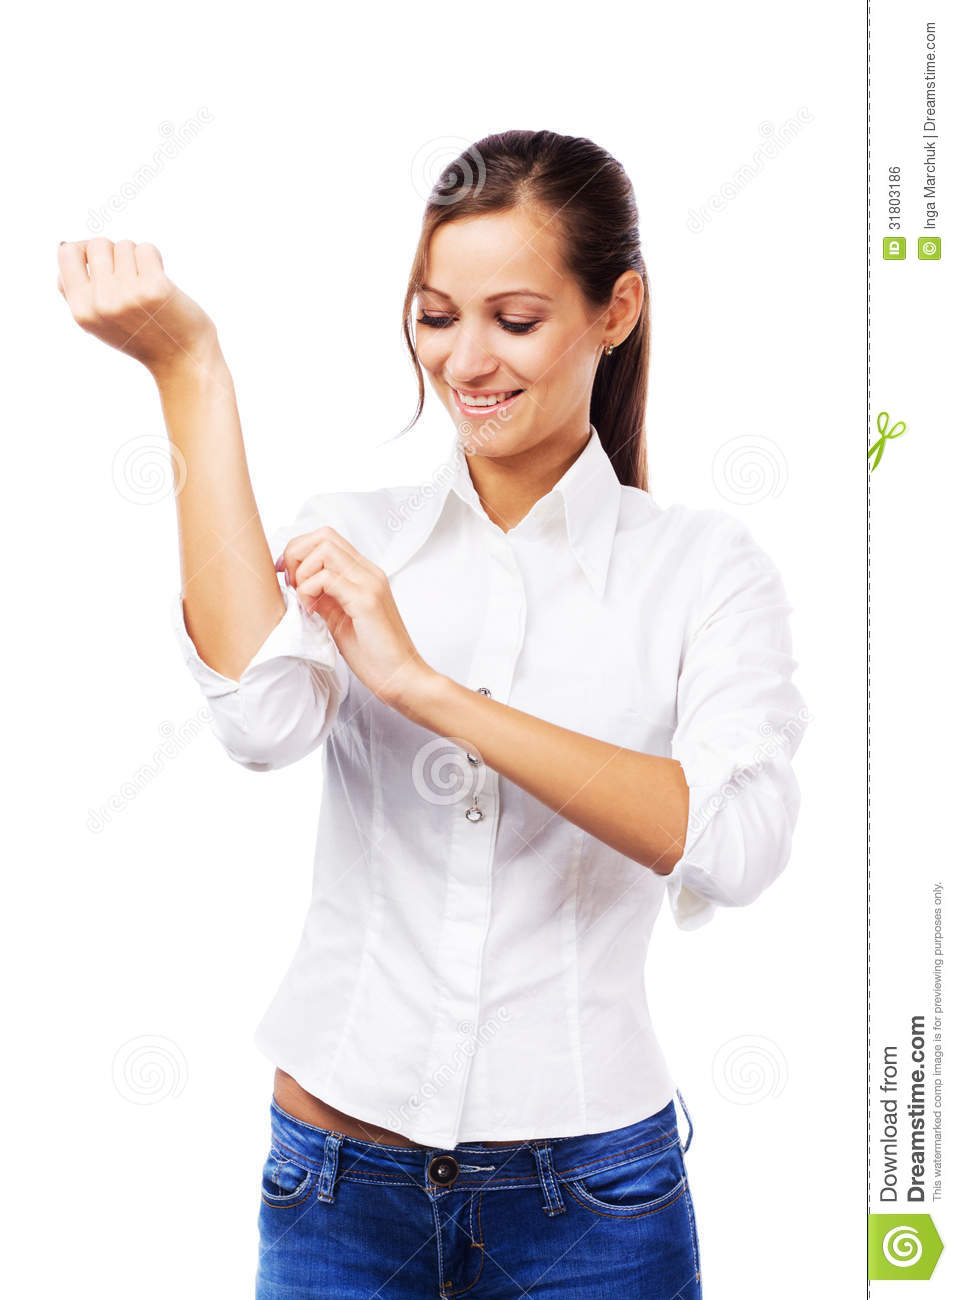 Woman In White Shirt Turning Up Sleeves Royalty Free Stock Image ...